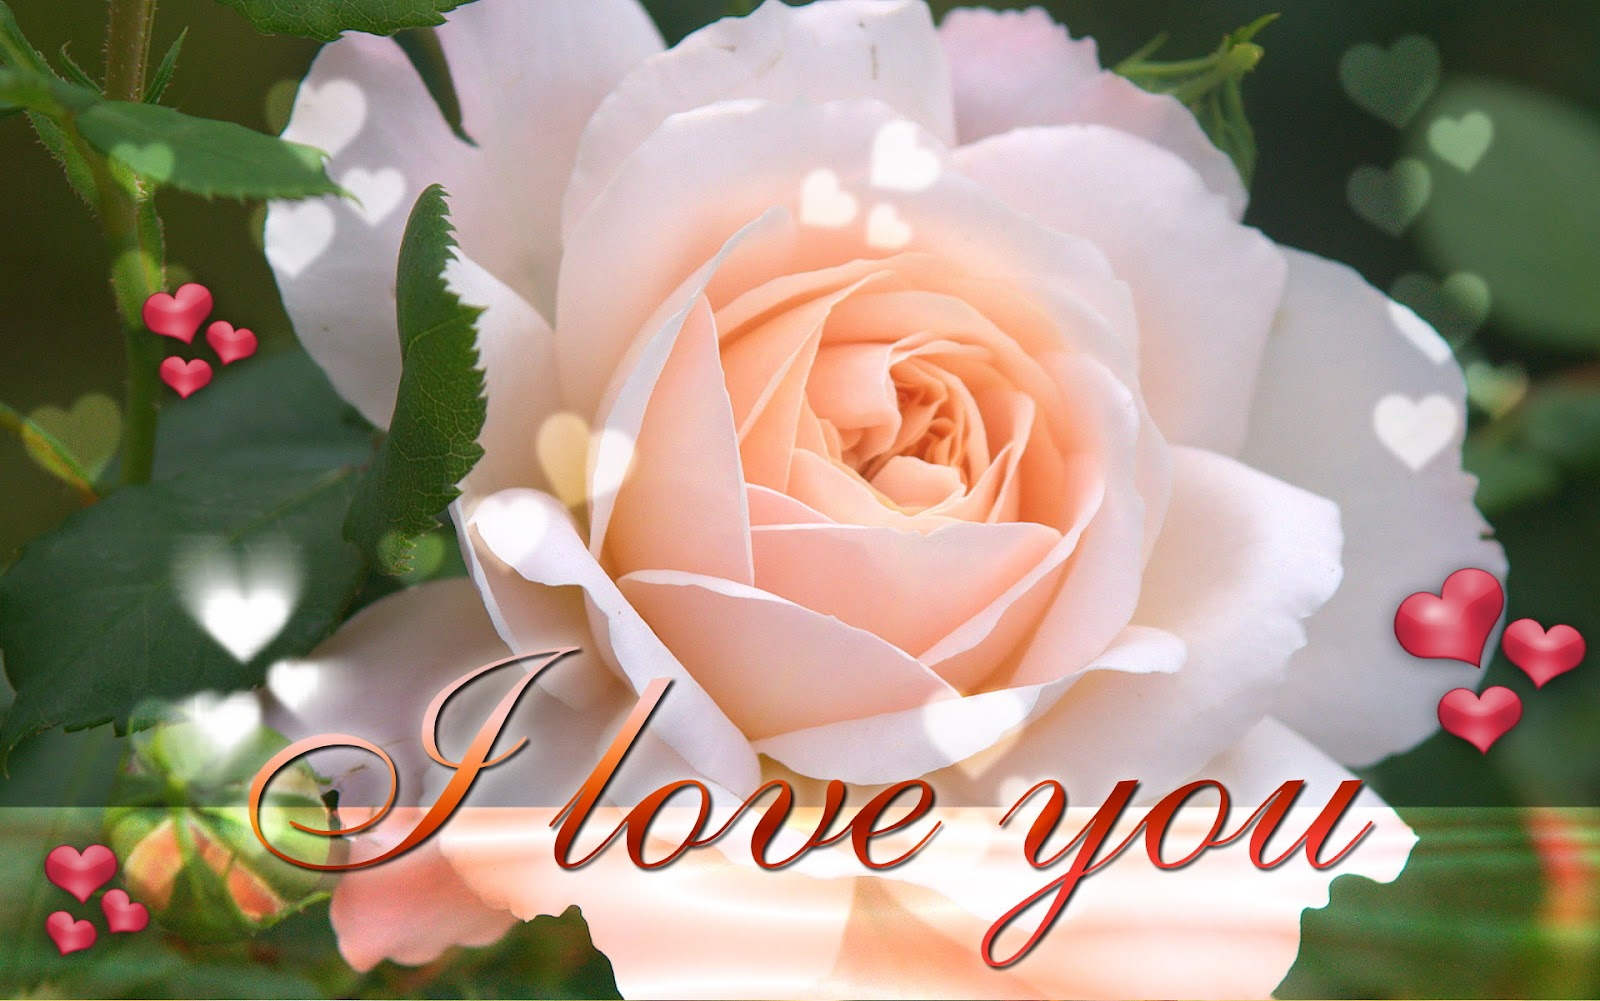 http://3.bp.blogspot.com/-DUidtw0riCk/T4IPhiJ9dGI/AAAAAAAAA98/nzf6BoI50zA/s1600/beautiful-love-wallpaper-02.jpg